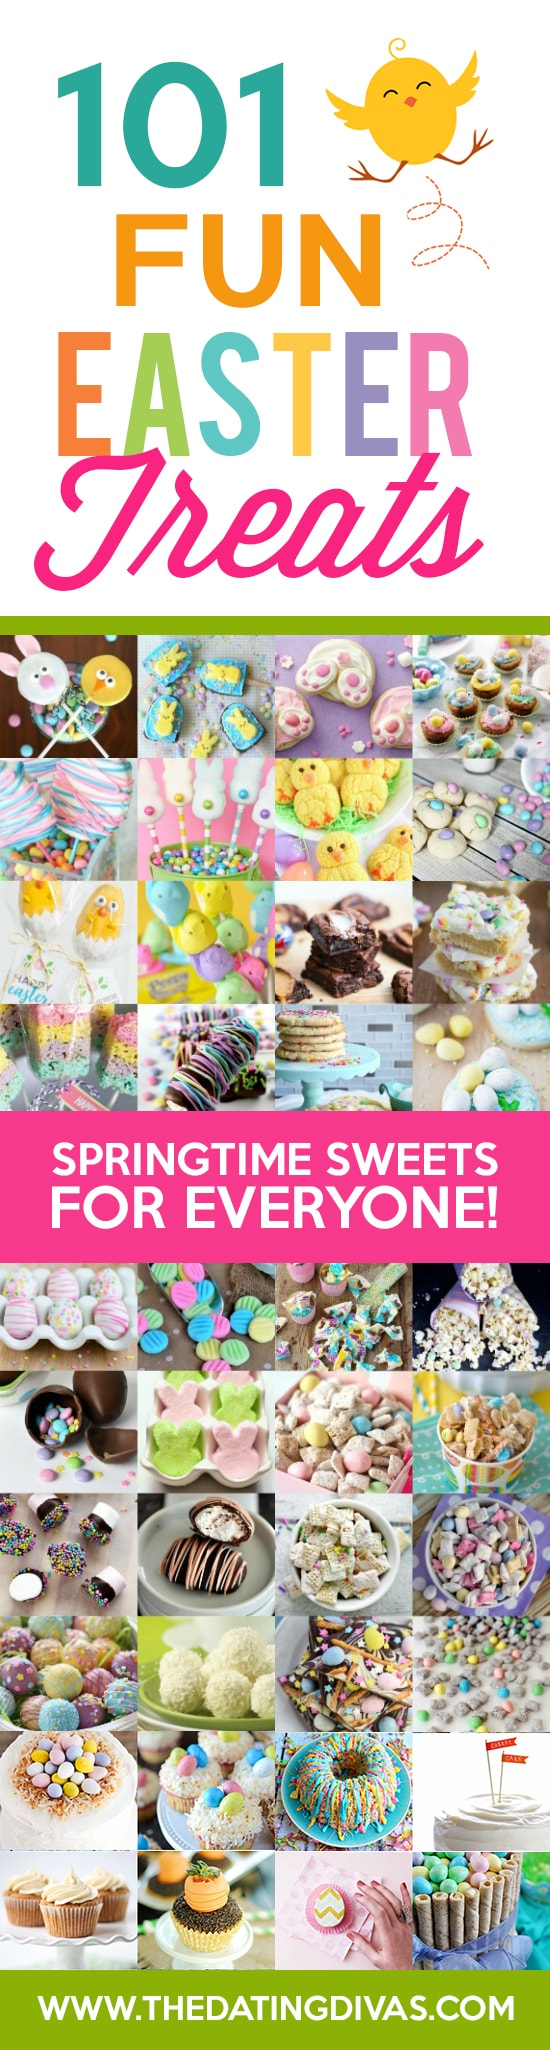 dating easter Tons of the best easter ideas including: traditions, christ-centered activities, crafts, treats, easter egg decorating ideas, and more | see more ideas about easter party, easter and easter crafts.